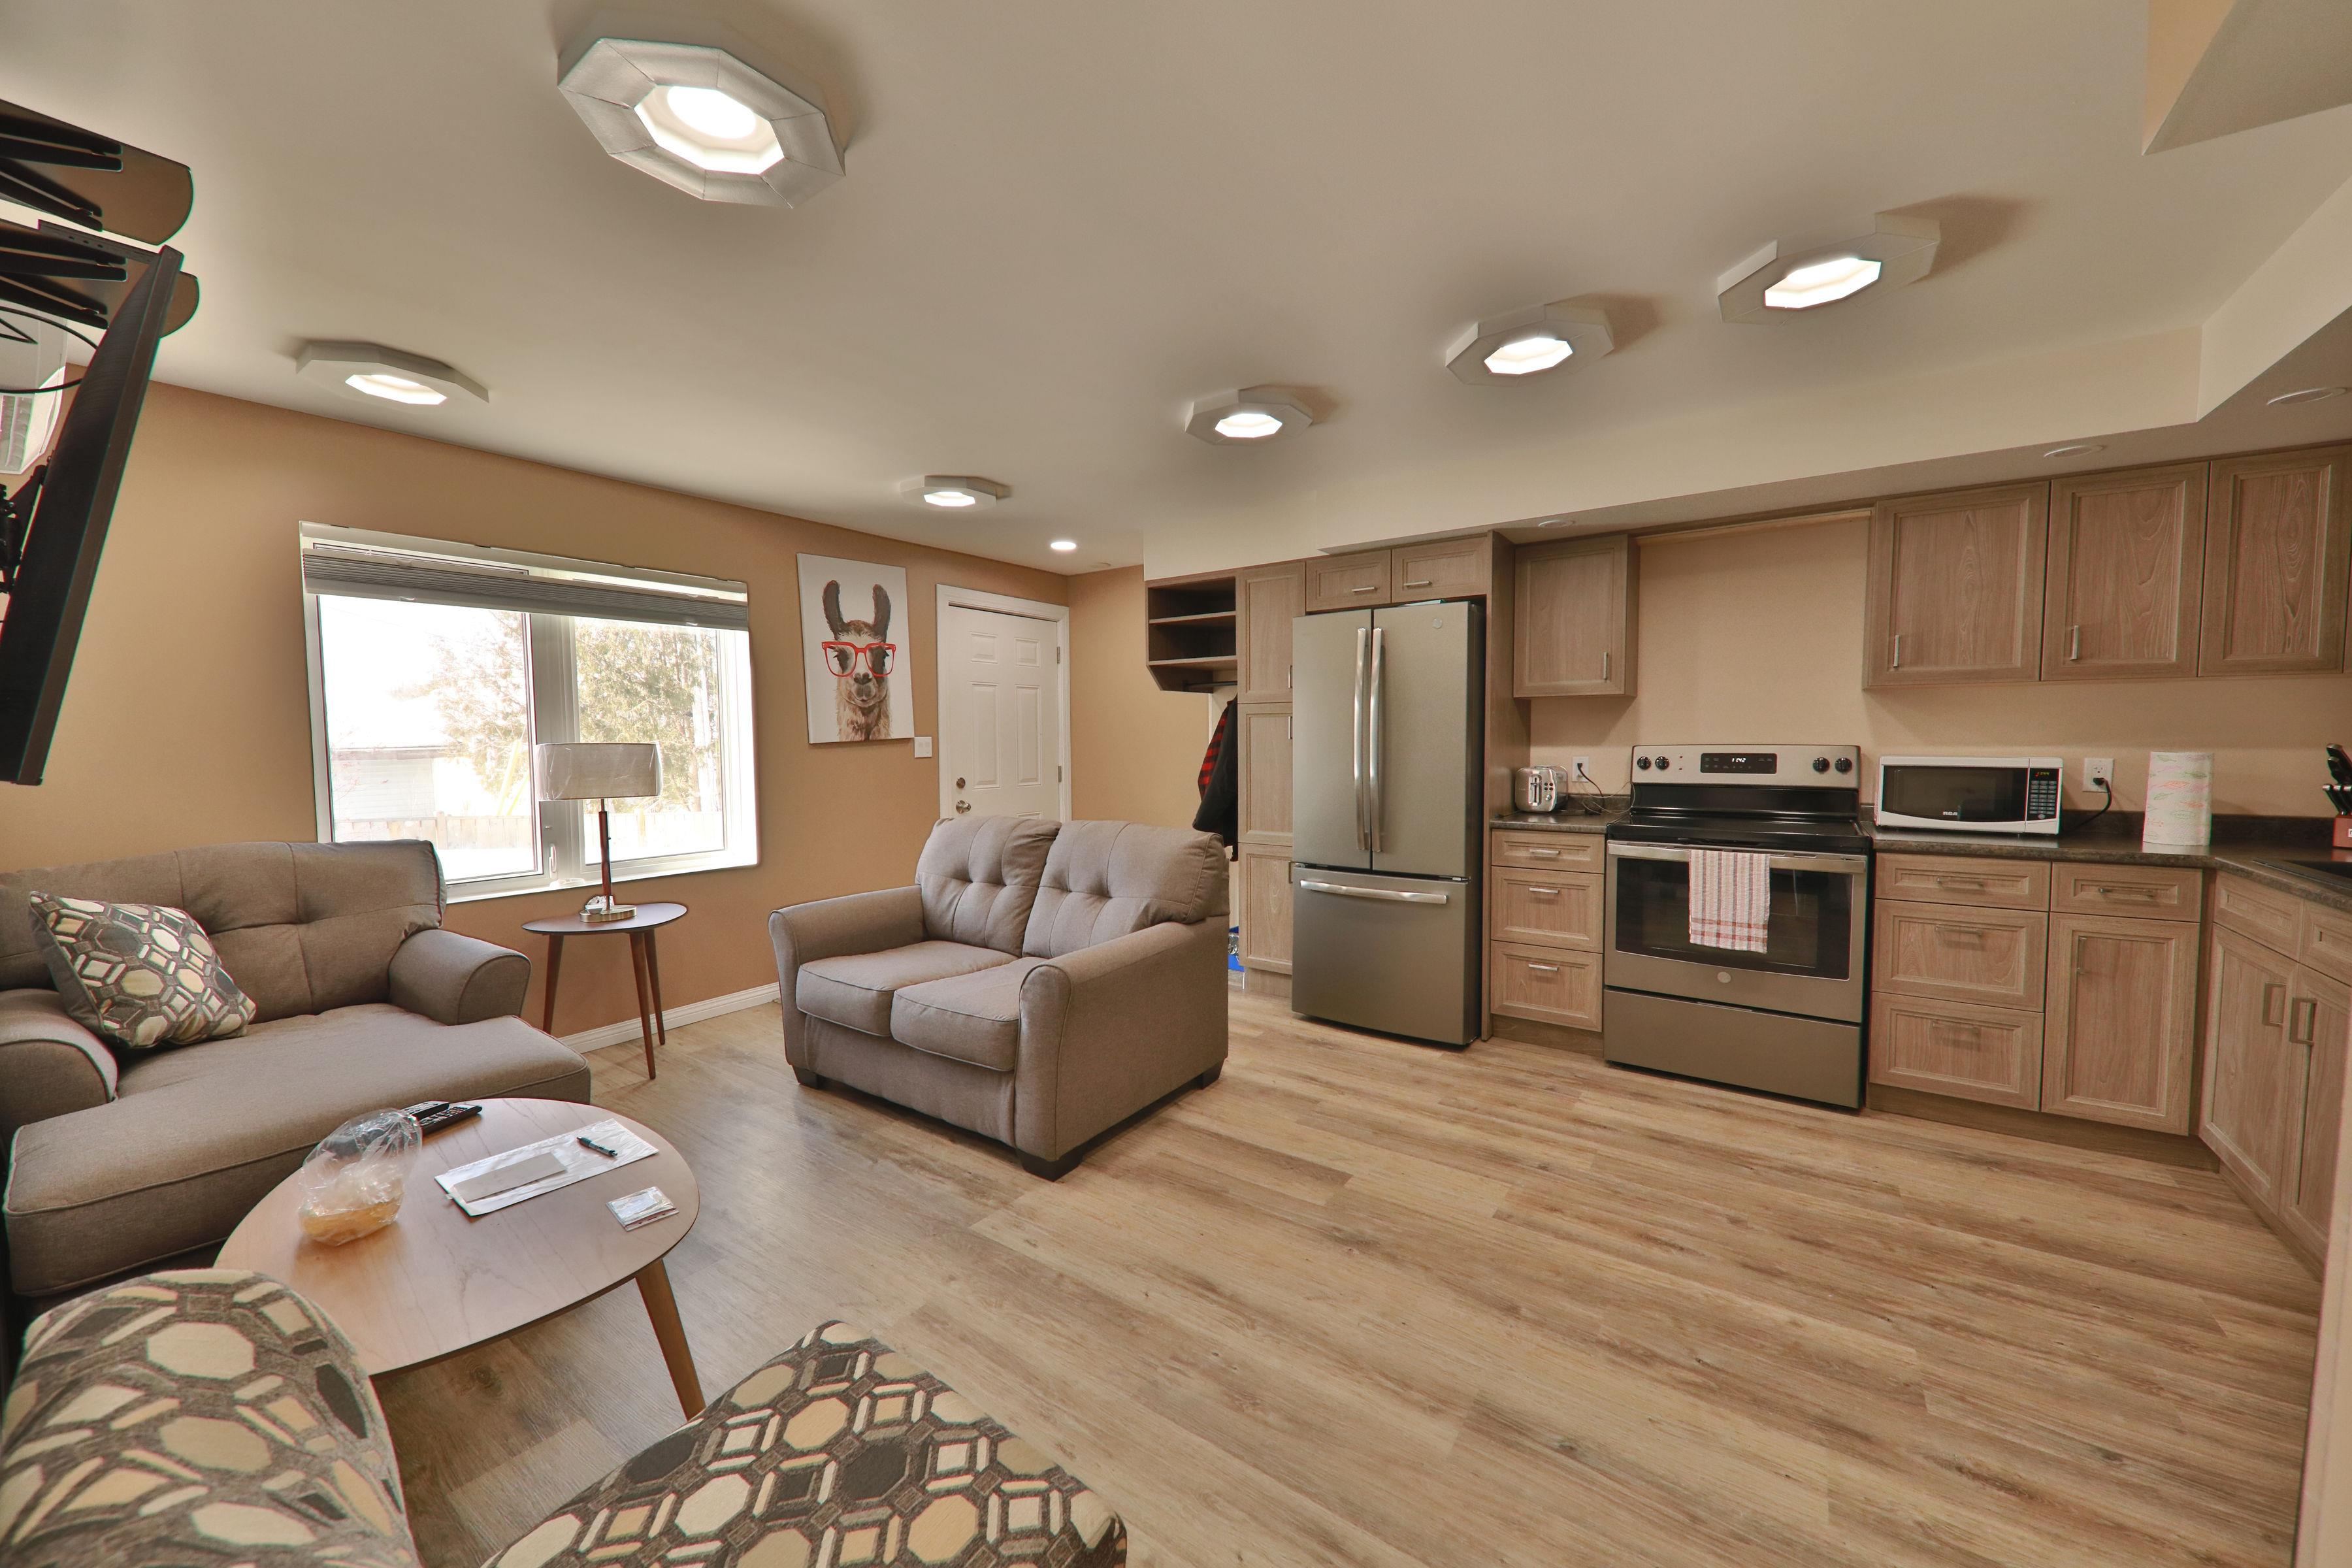 Interior of apartment with view of kitchen and living area